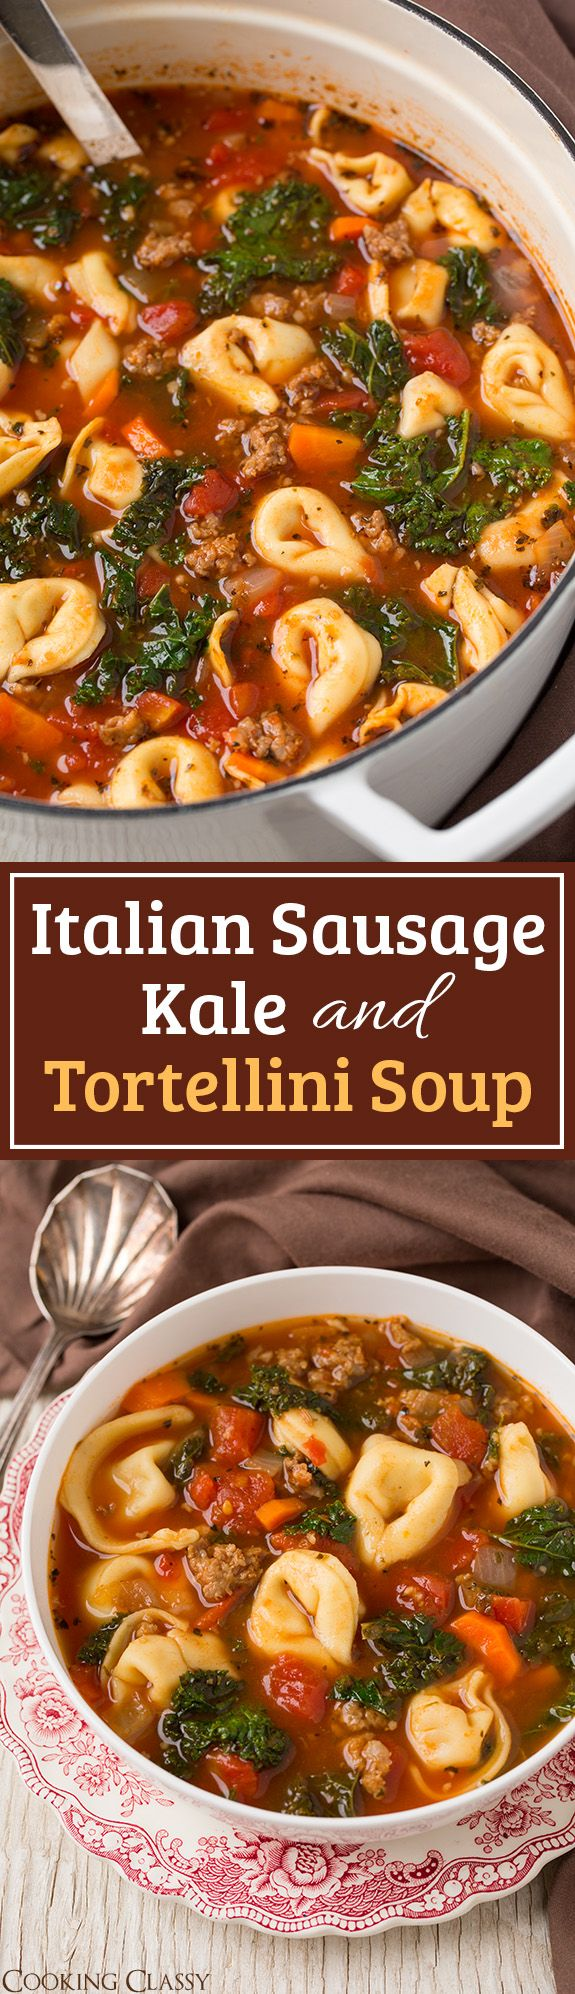 Italian Sausage, Kale and Tortellini Soup - this soup is incredibly delicious! Perfect for any day of the week!